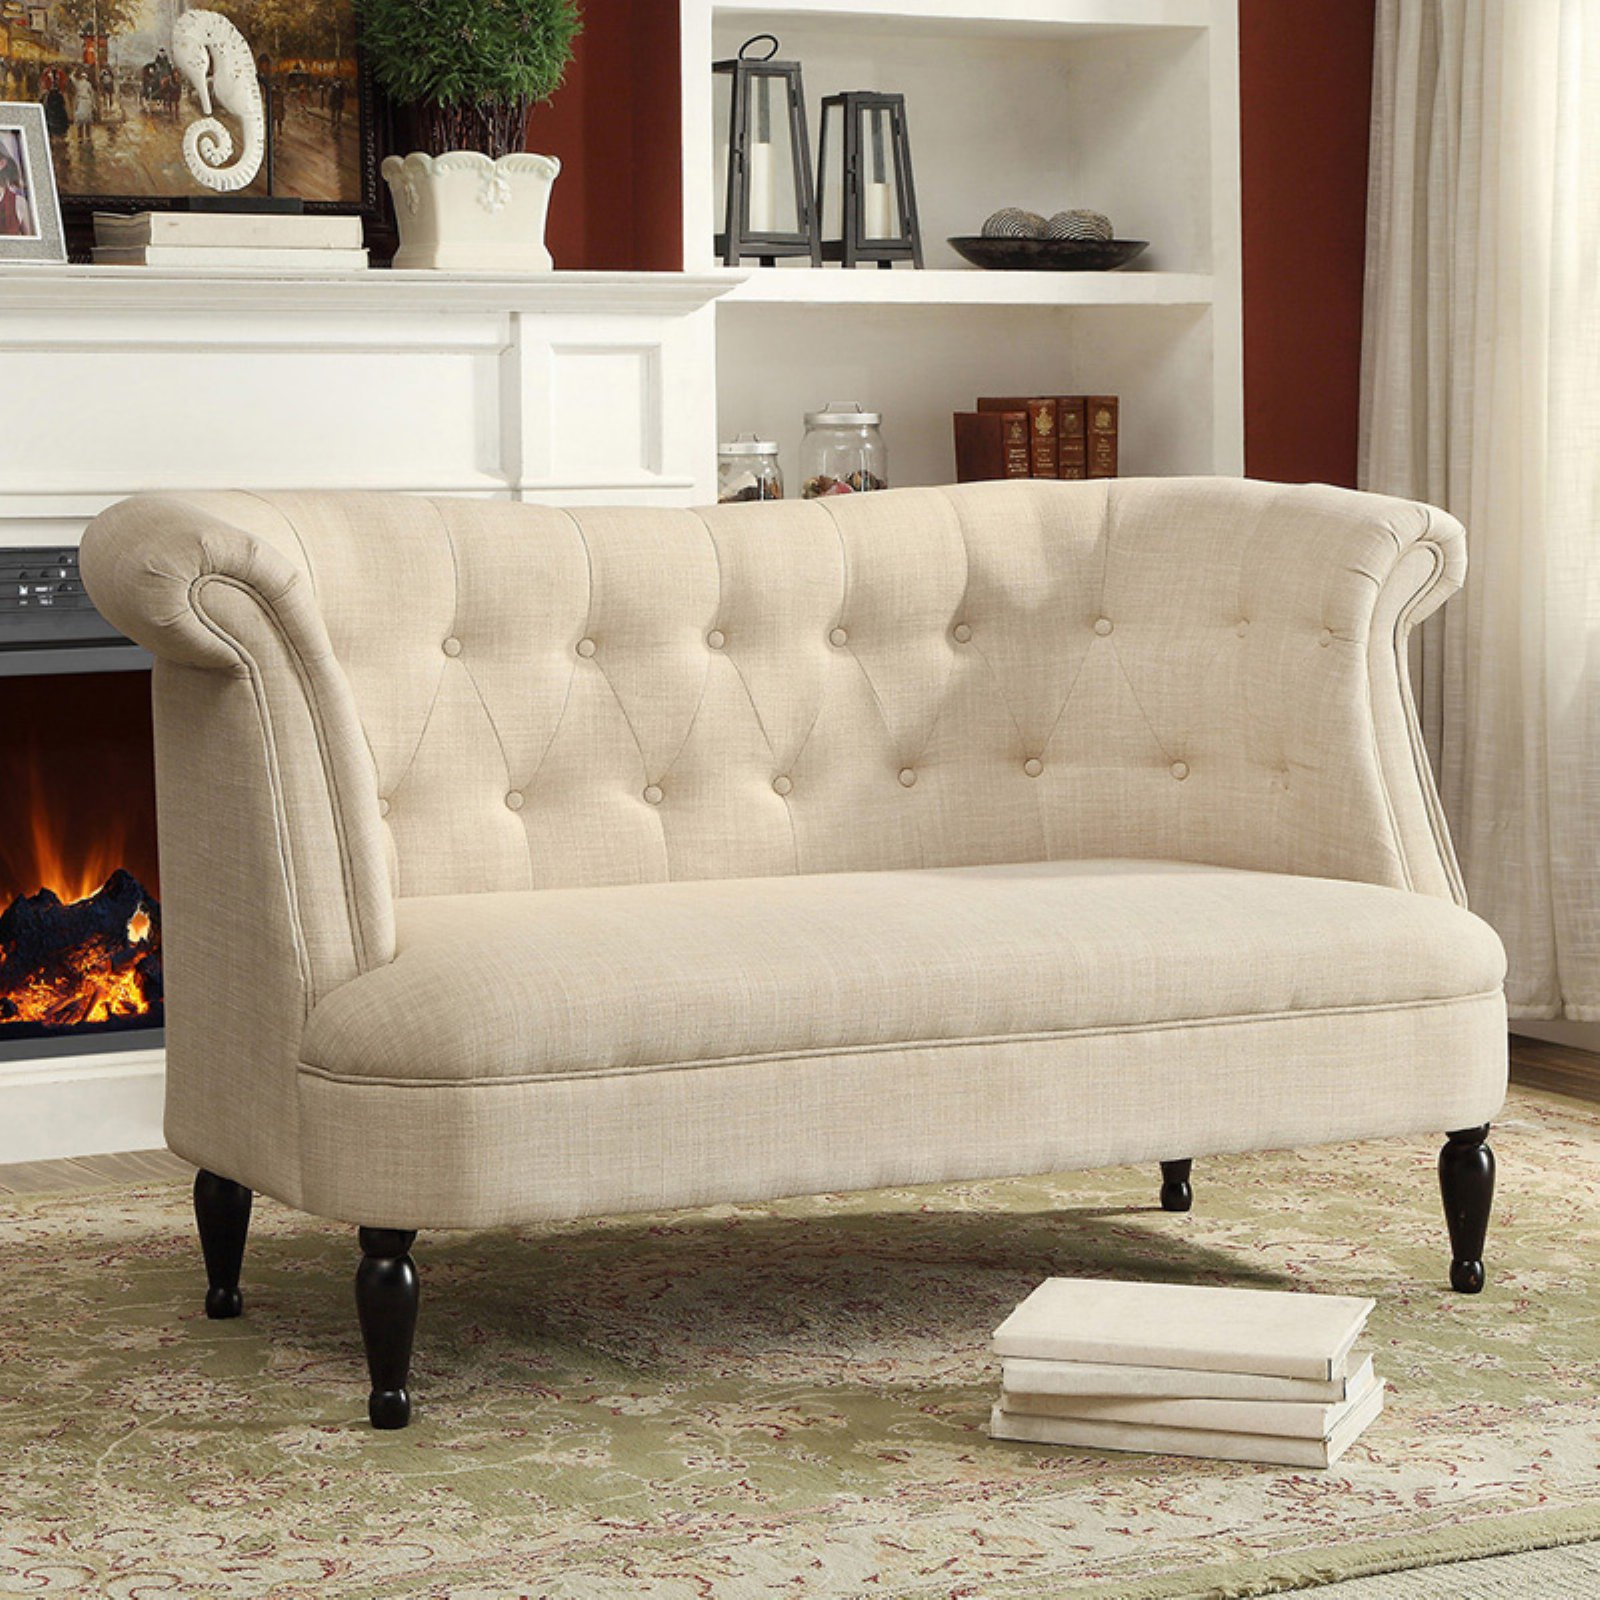 Baxton Studio Erica Victorian Style Contemporary Beige Linen Fabric Upholstered Button-Tufted 2-Seater Loveseat